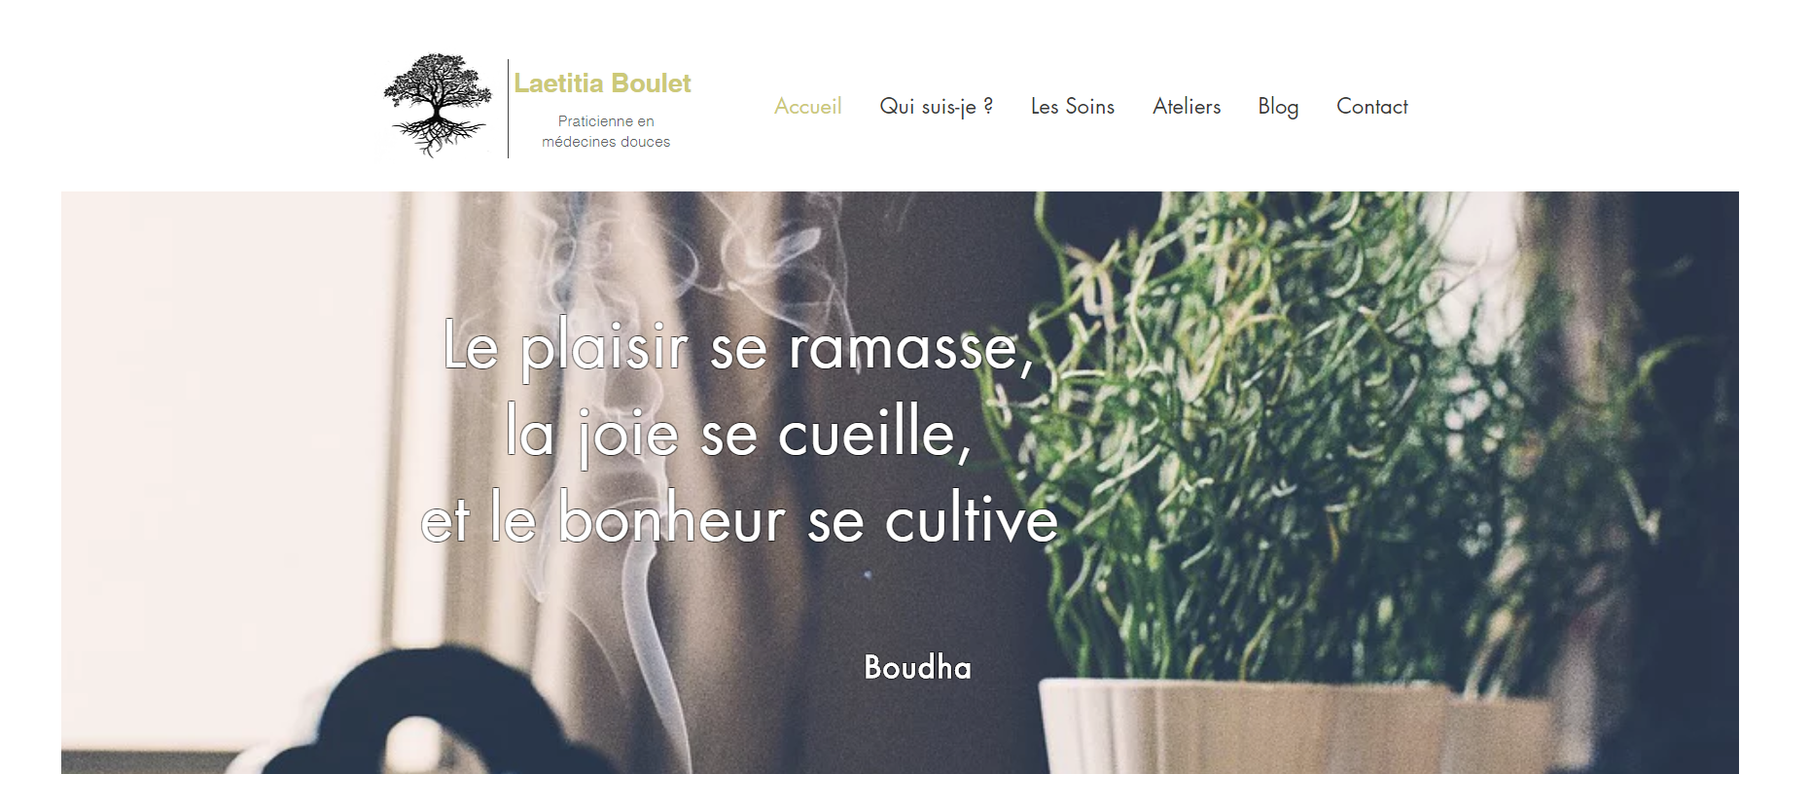 Site Internet Laetitia Boulet